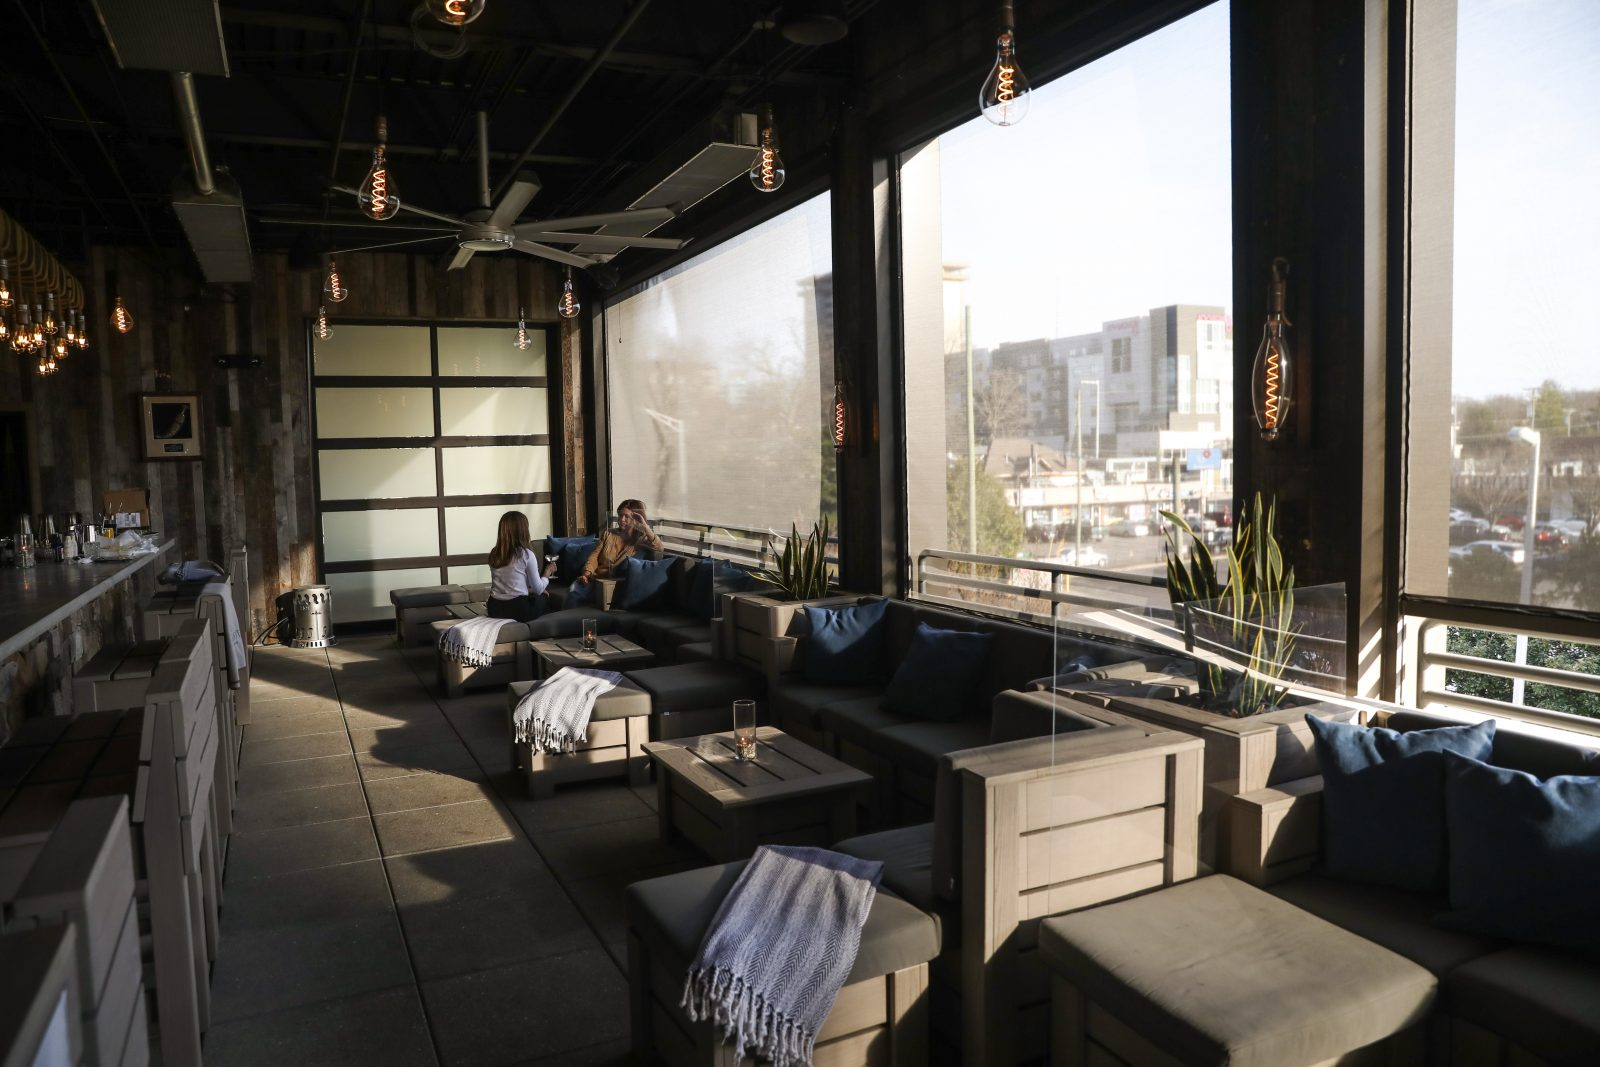 The Patio Dining destination you need to visit in Nashville this summer